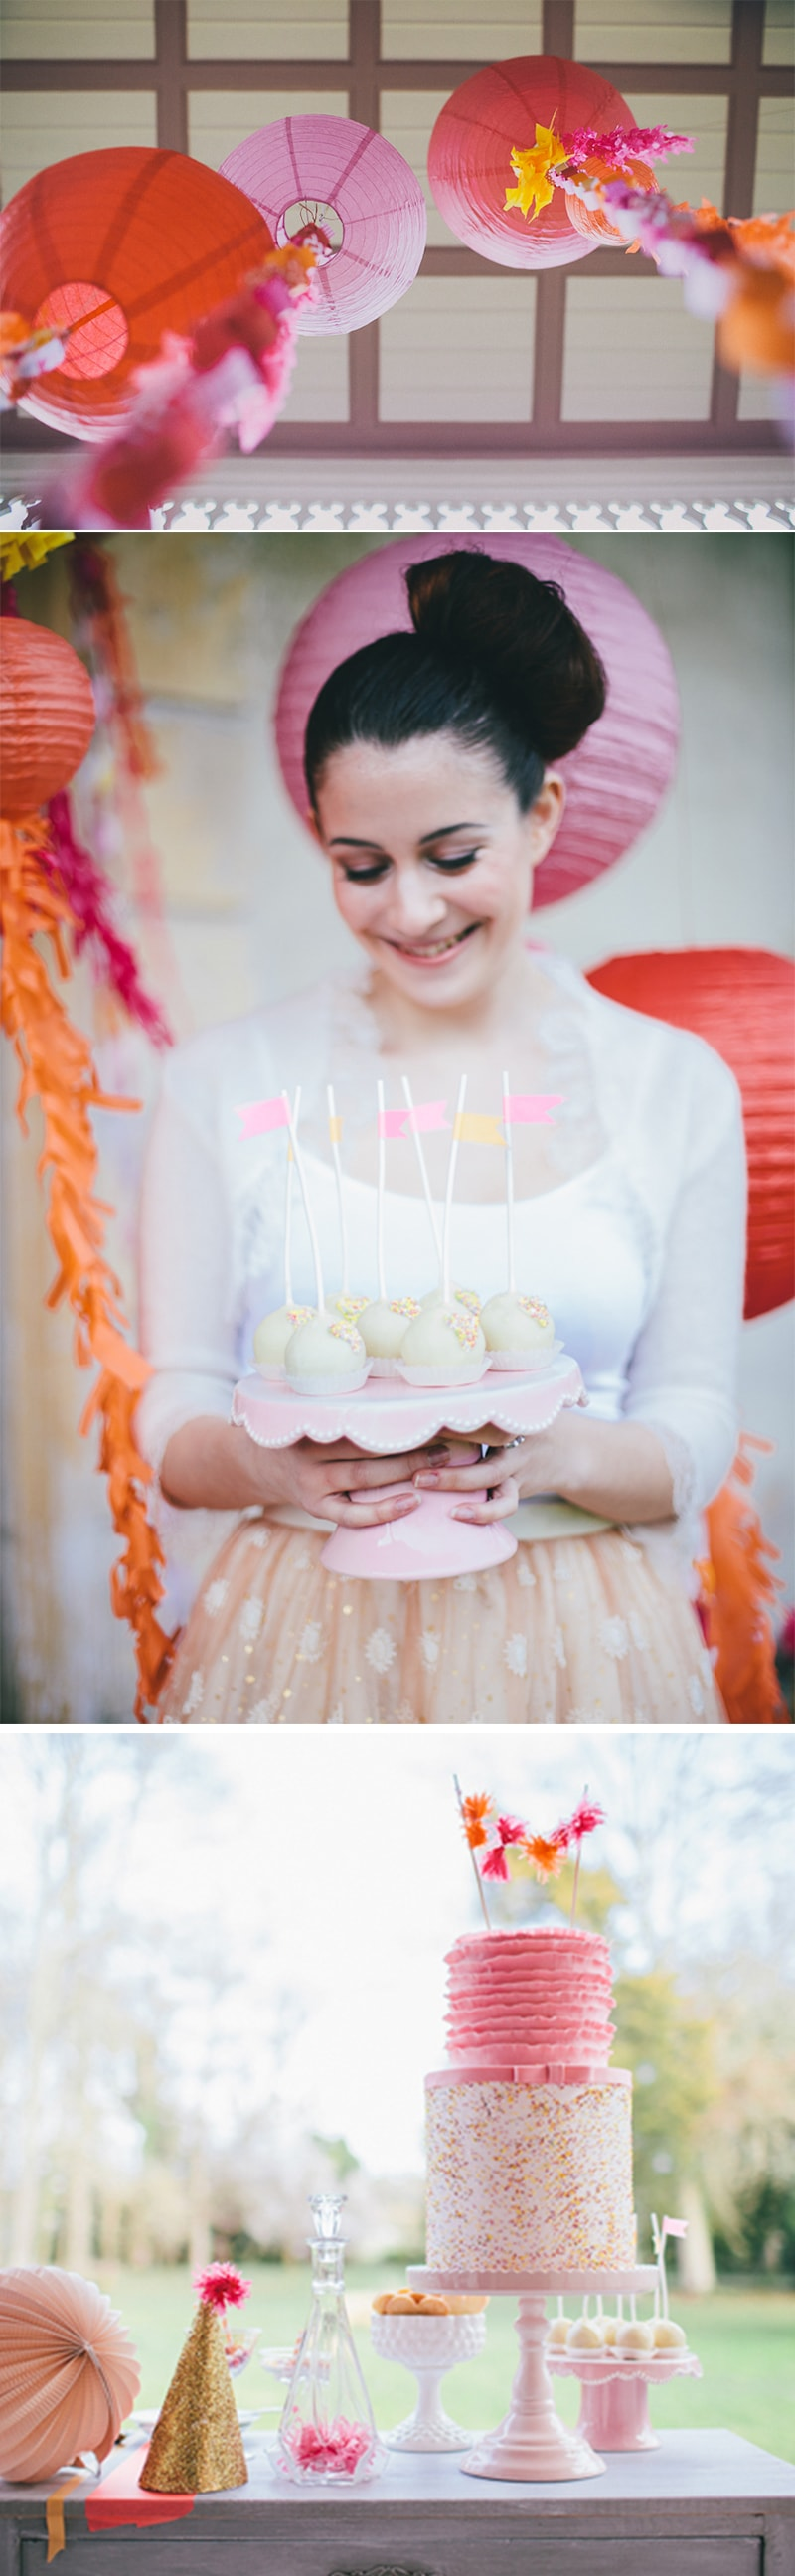 Gorgeous Party Inspiration from A to Z!